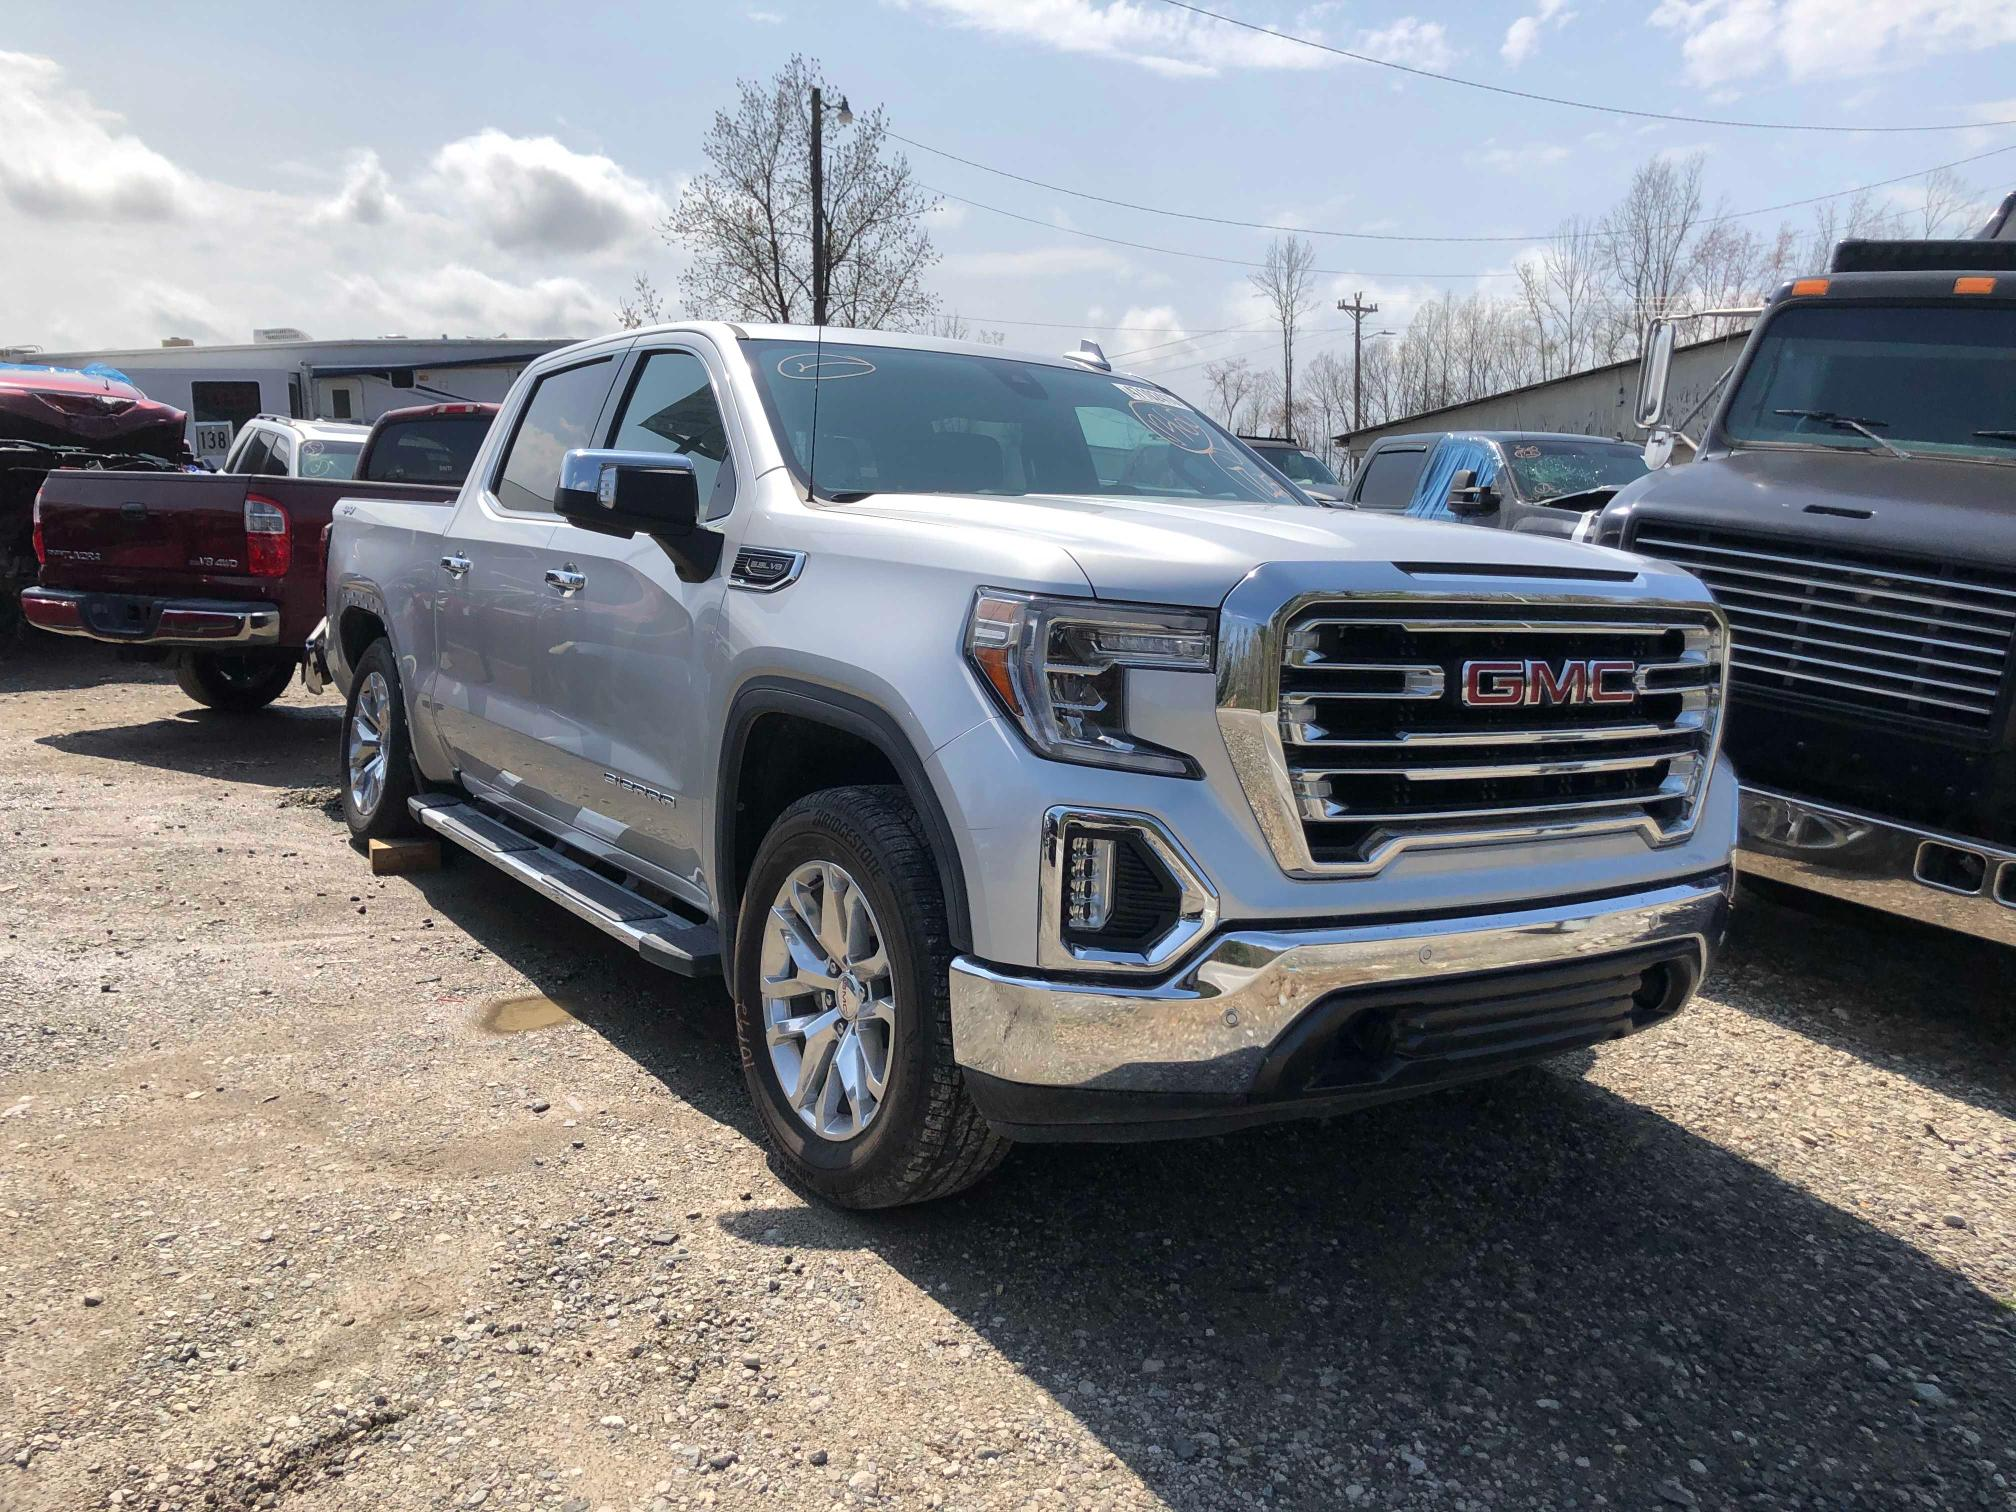 Salvage cars for sale from Copart Lebanon, TN: 2019 GMC Sierra K15